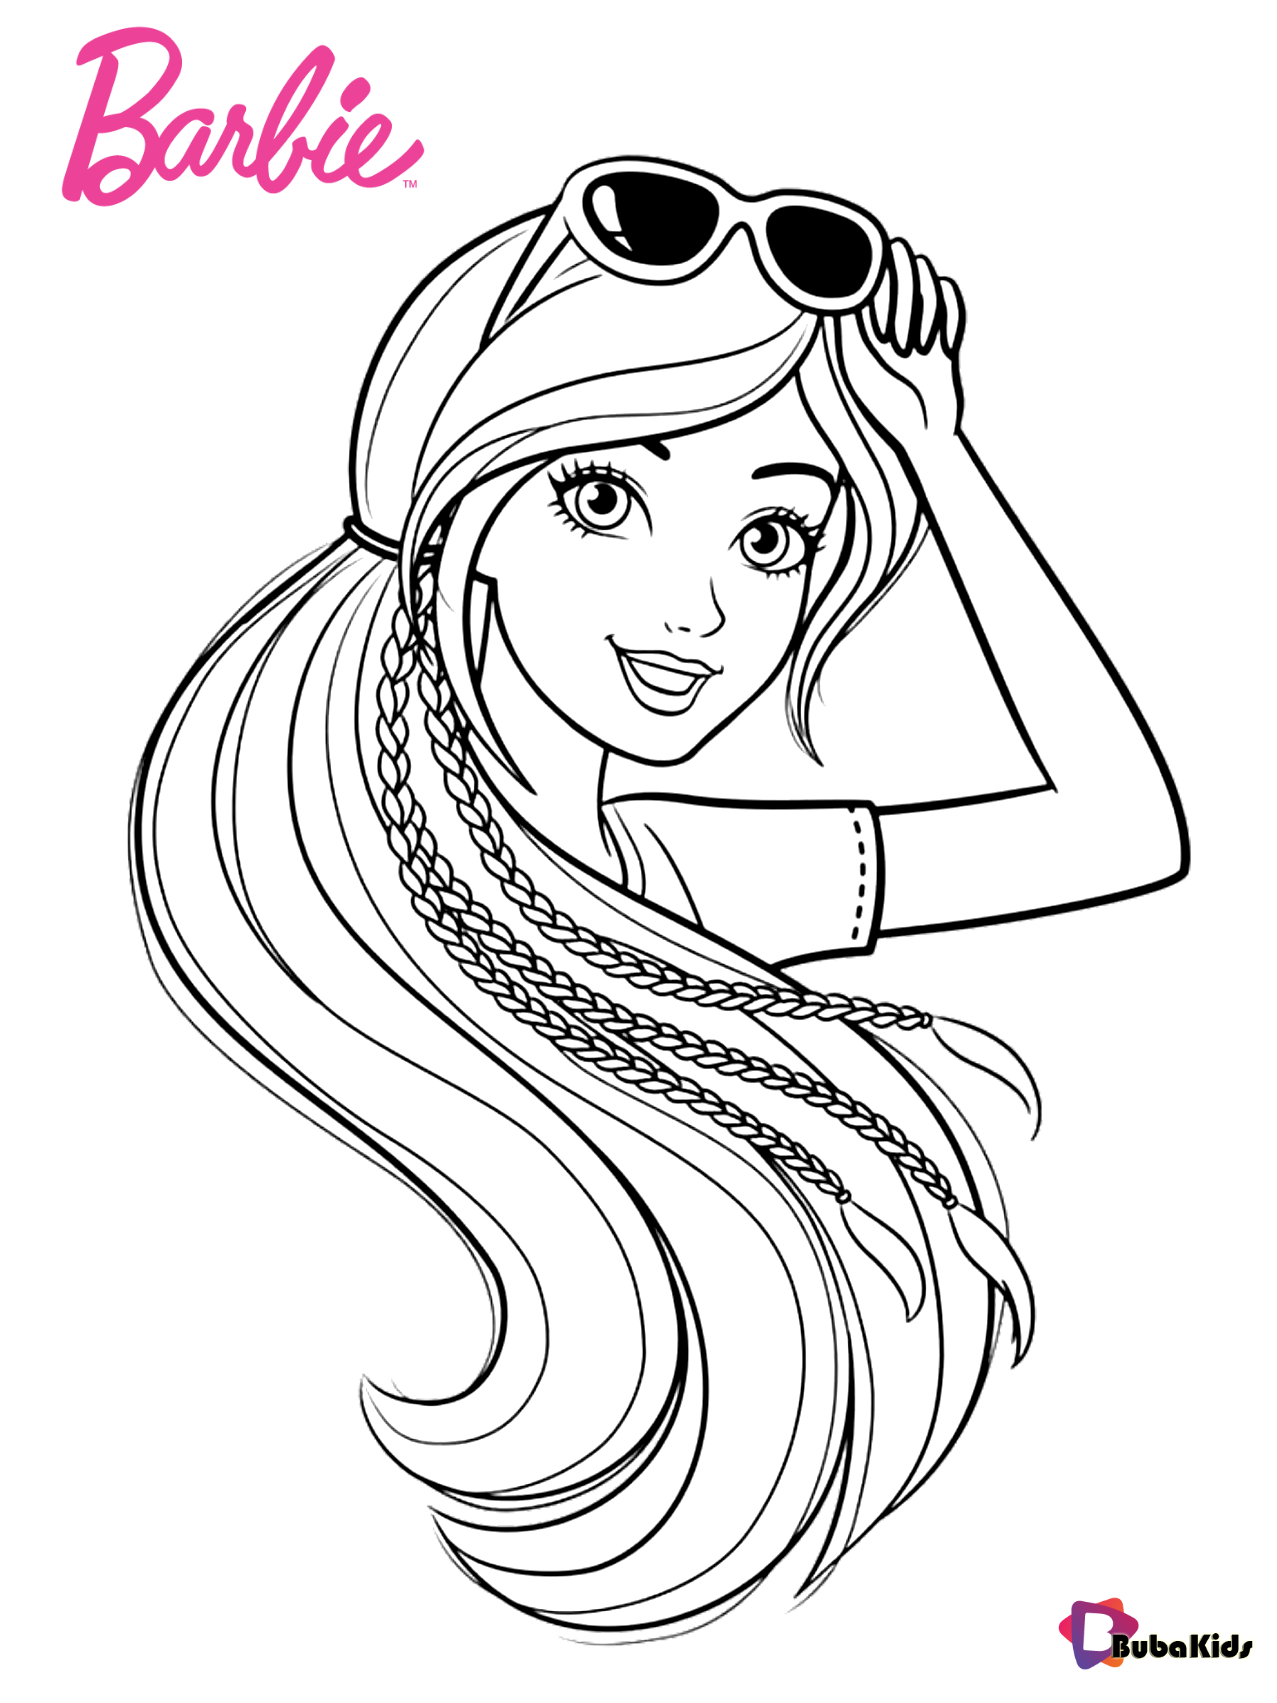 Pin By Rachel Stigler On Coloring Pages Barbie Coloring Pages Barbie Coloring Coloring Pages For Girls